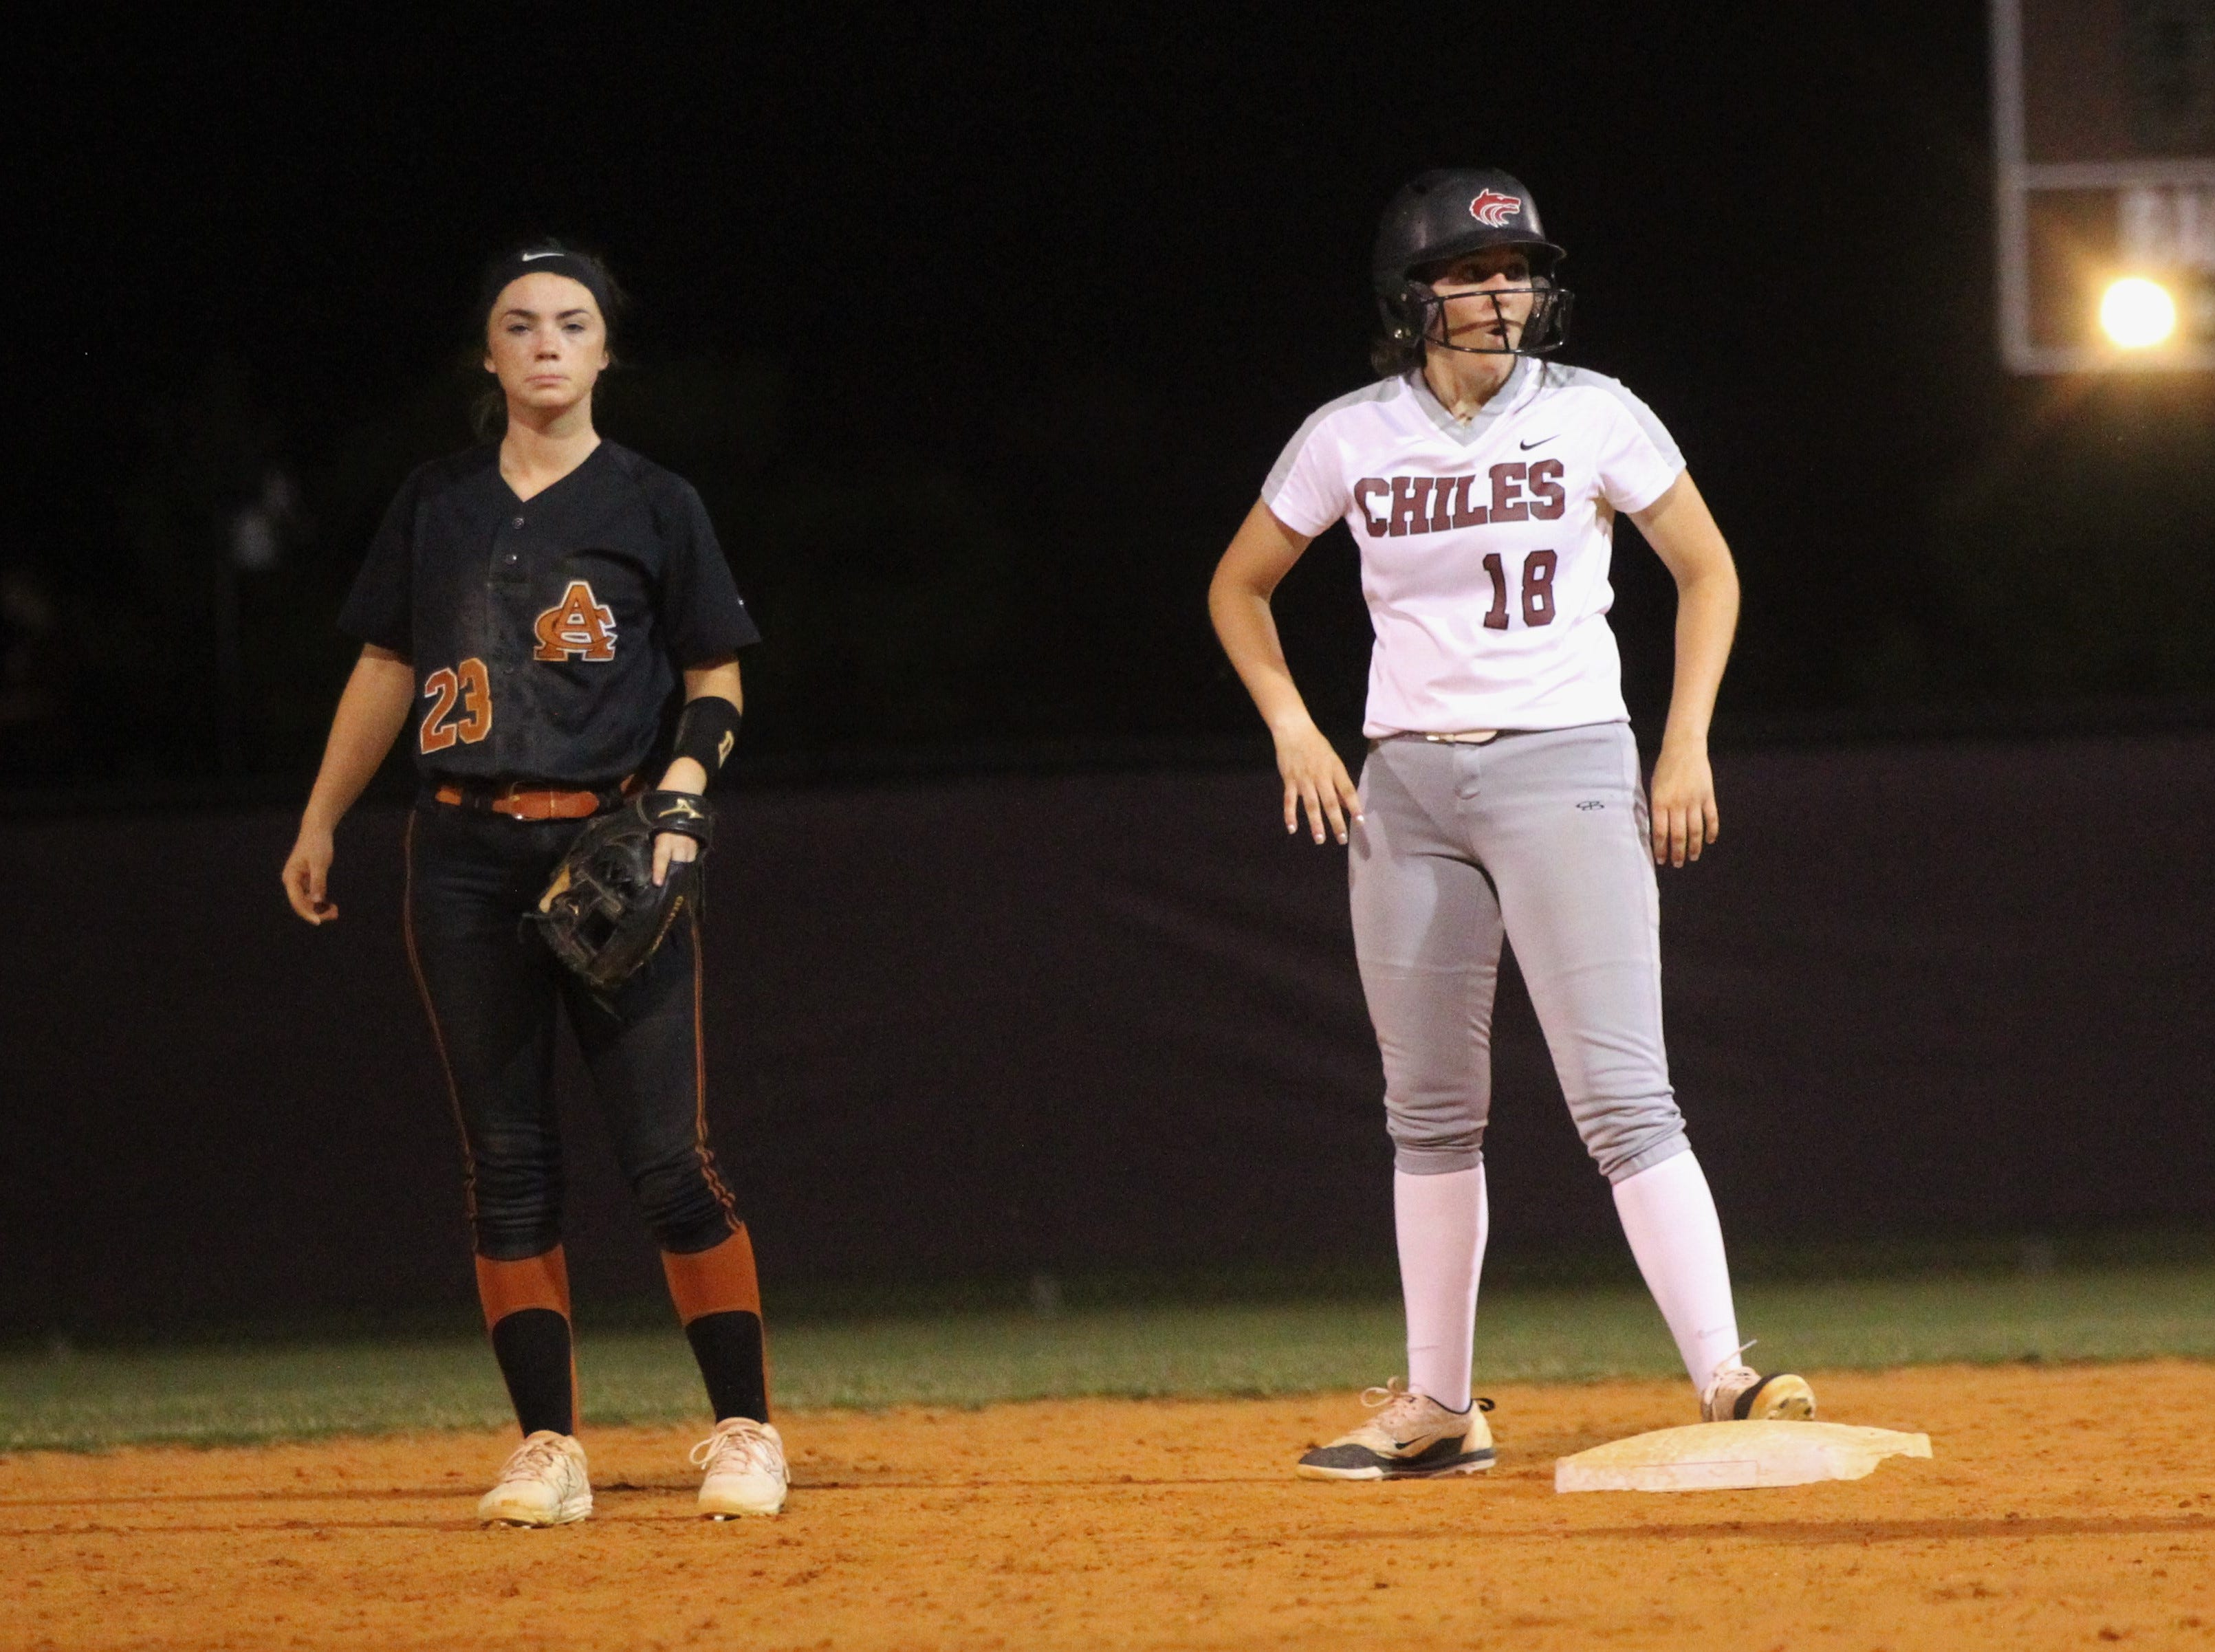 Chiles junior Megan Monk stands on second after being advaned following a single as the Timberwolves beat Atlantic Coast 6-4 during a Region 1-8A quarterfinal softball game on Wednesday, May 8, 2019.